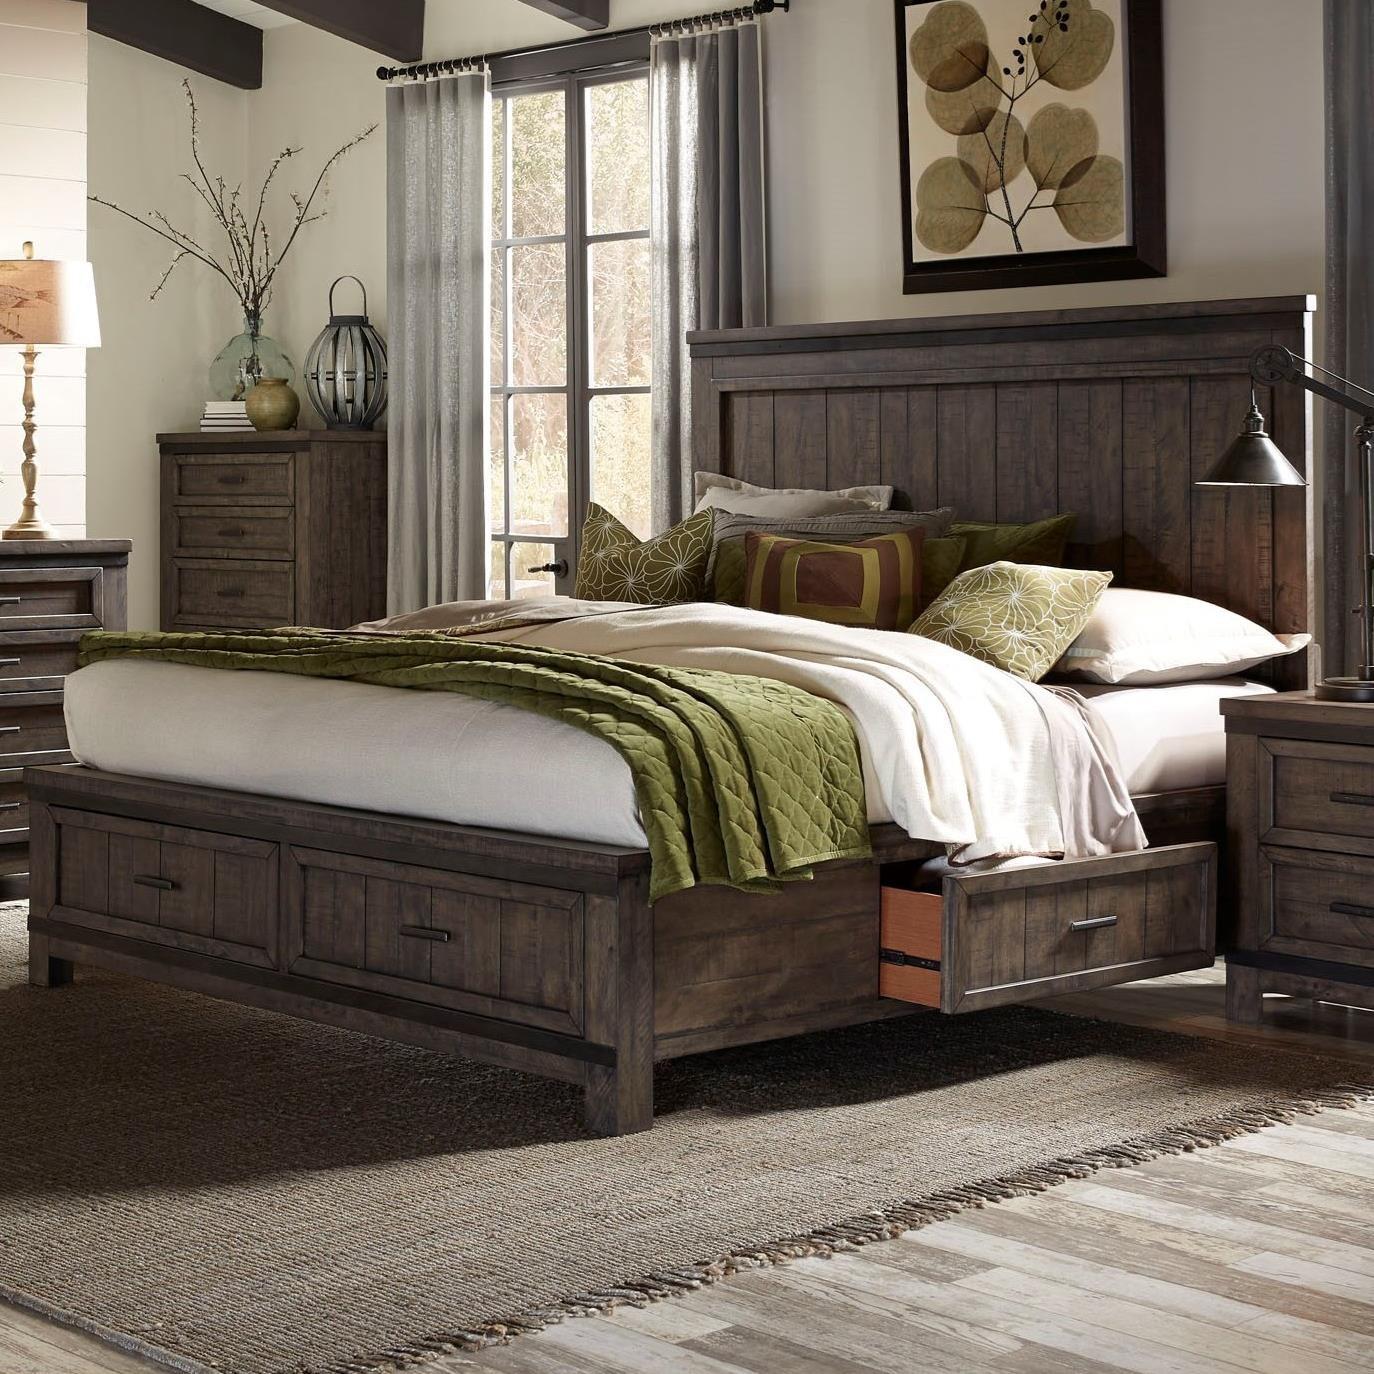 Liberty Furniture Thornwood Hills Queen Two Sided Storage Bed - Item Number: 759-BR-Q2S